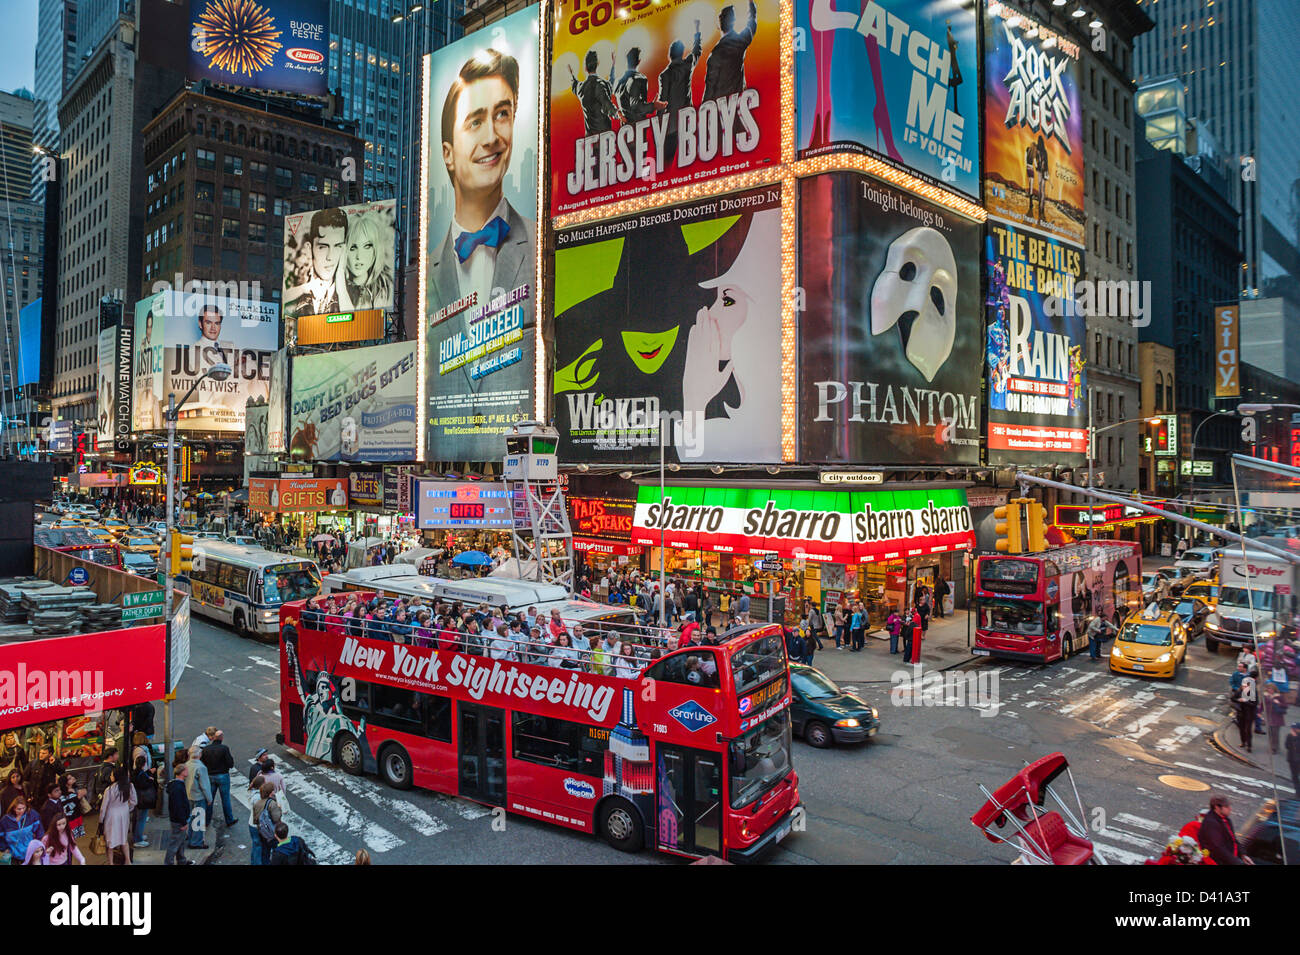 A sightseeing bus packed with tourists in Times Square New York City - Stock Image